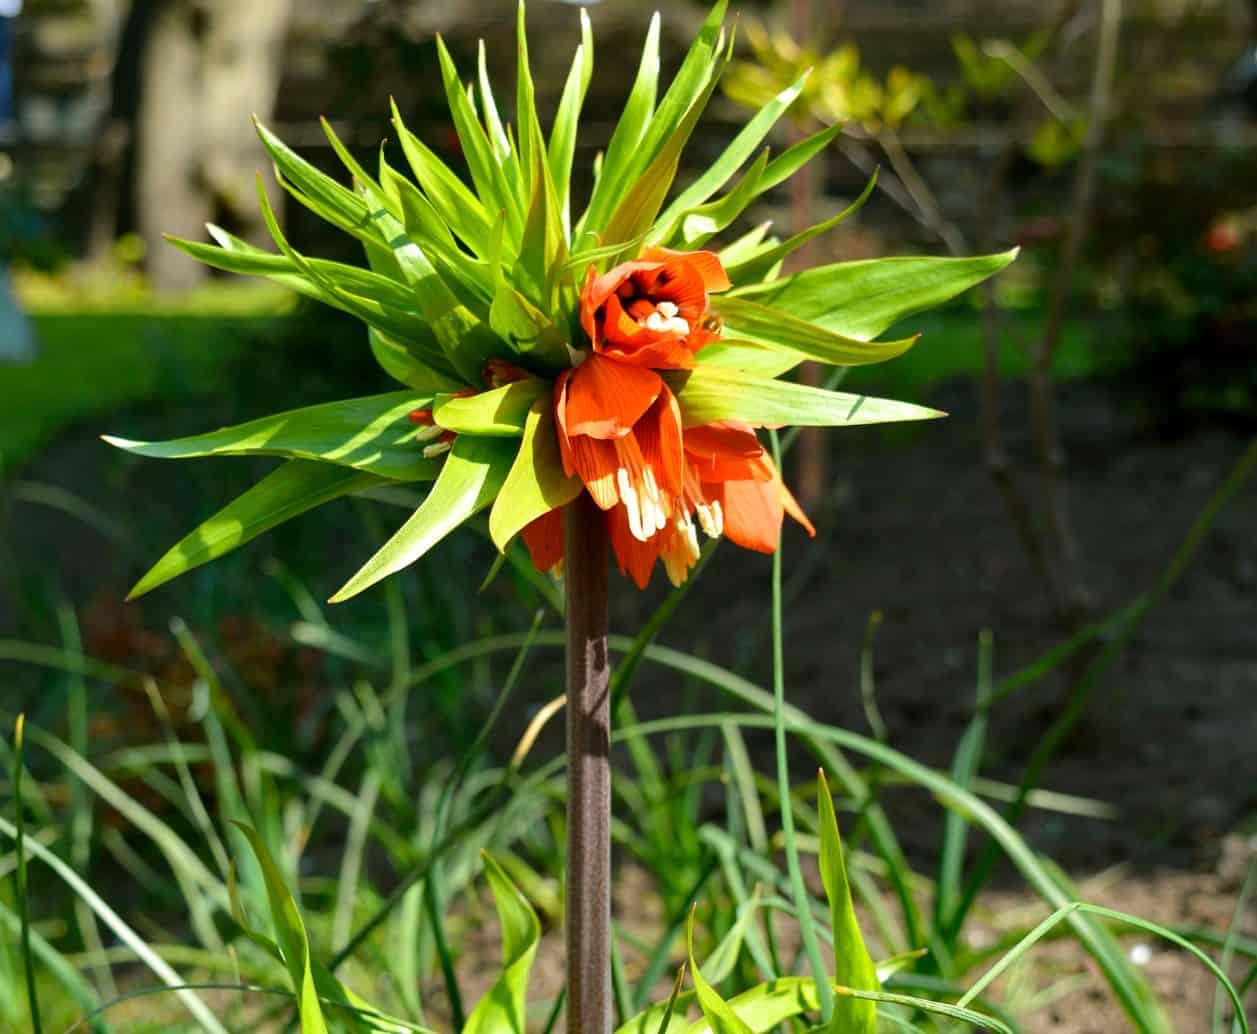 The crown imperial has bell-shaped flowers.